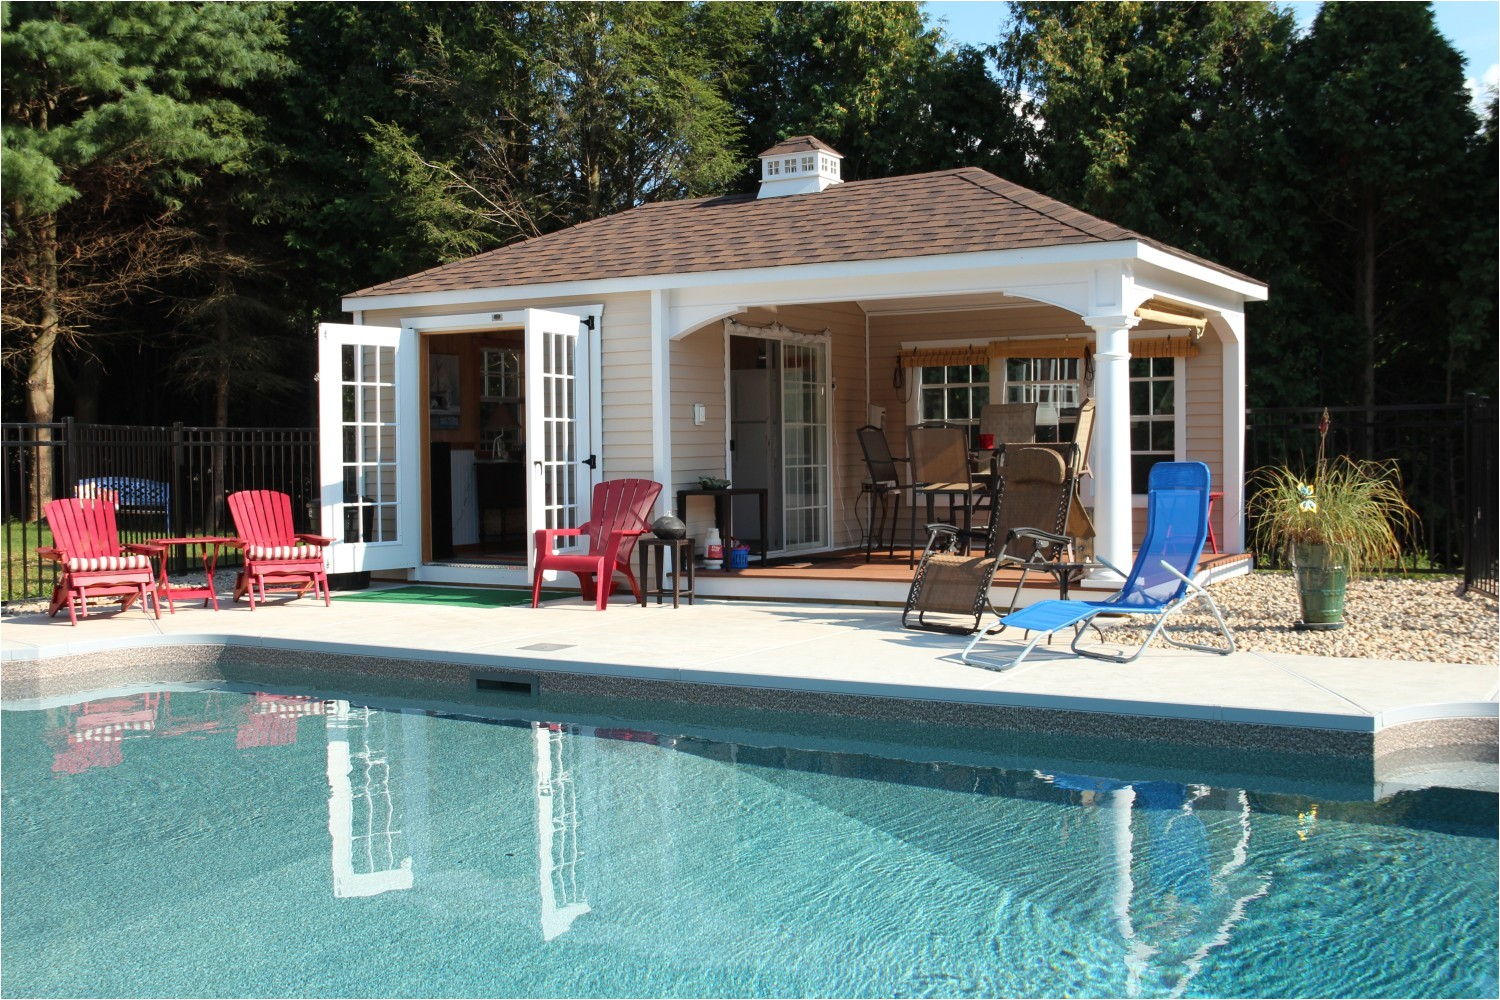 house pools good pool house plans pool house pool house designs pool house ideas